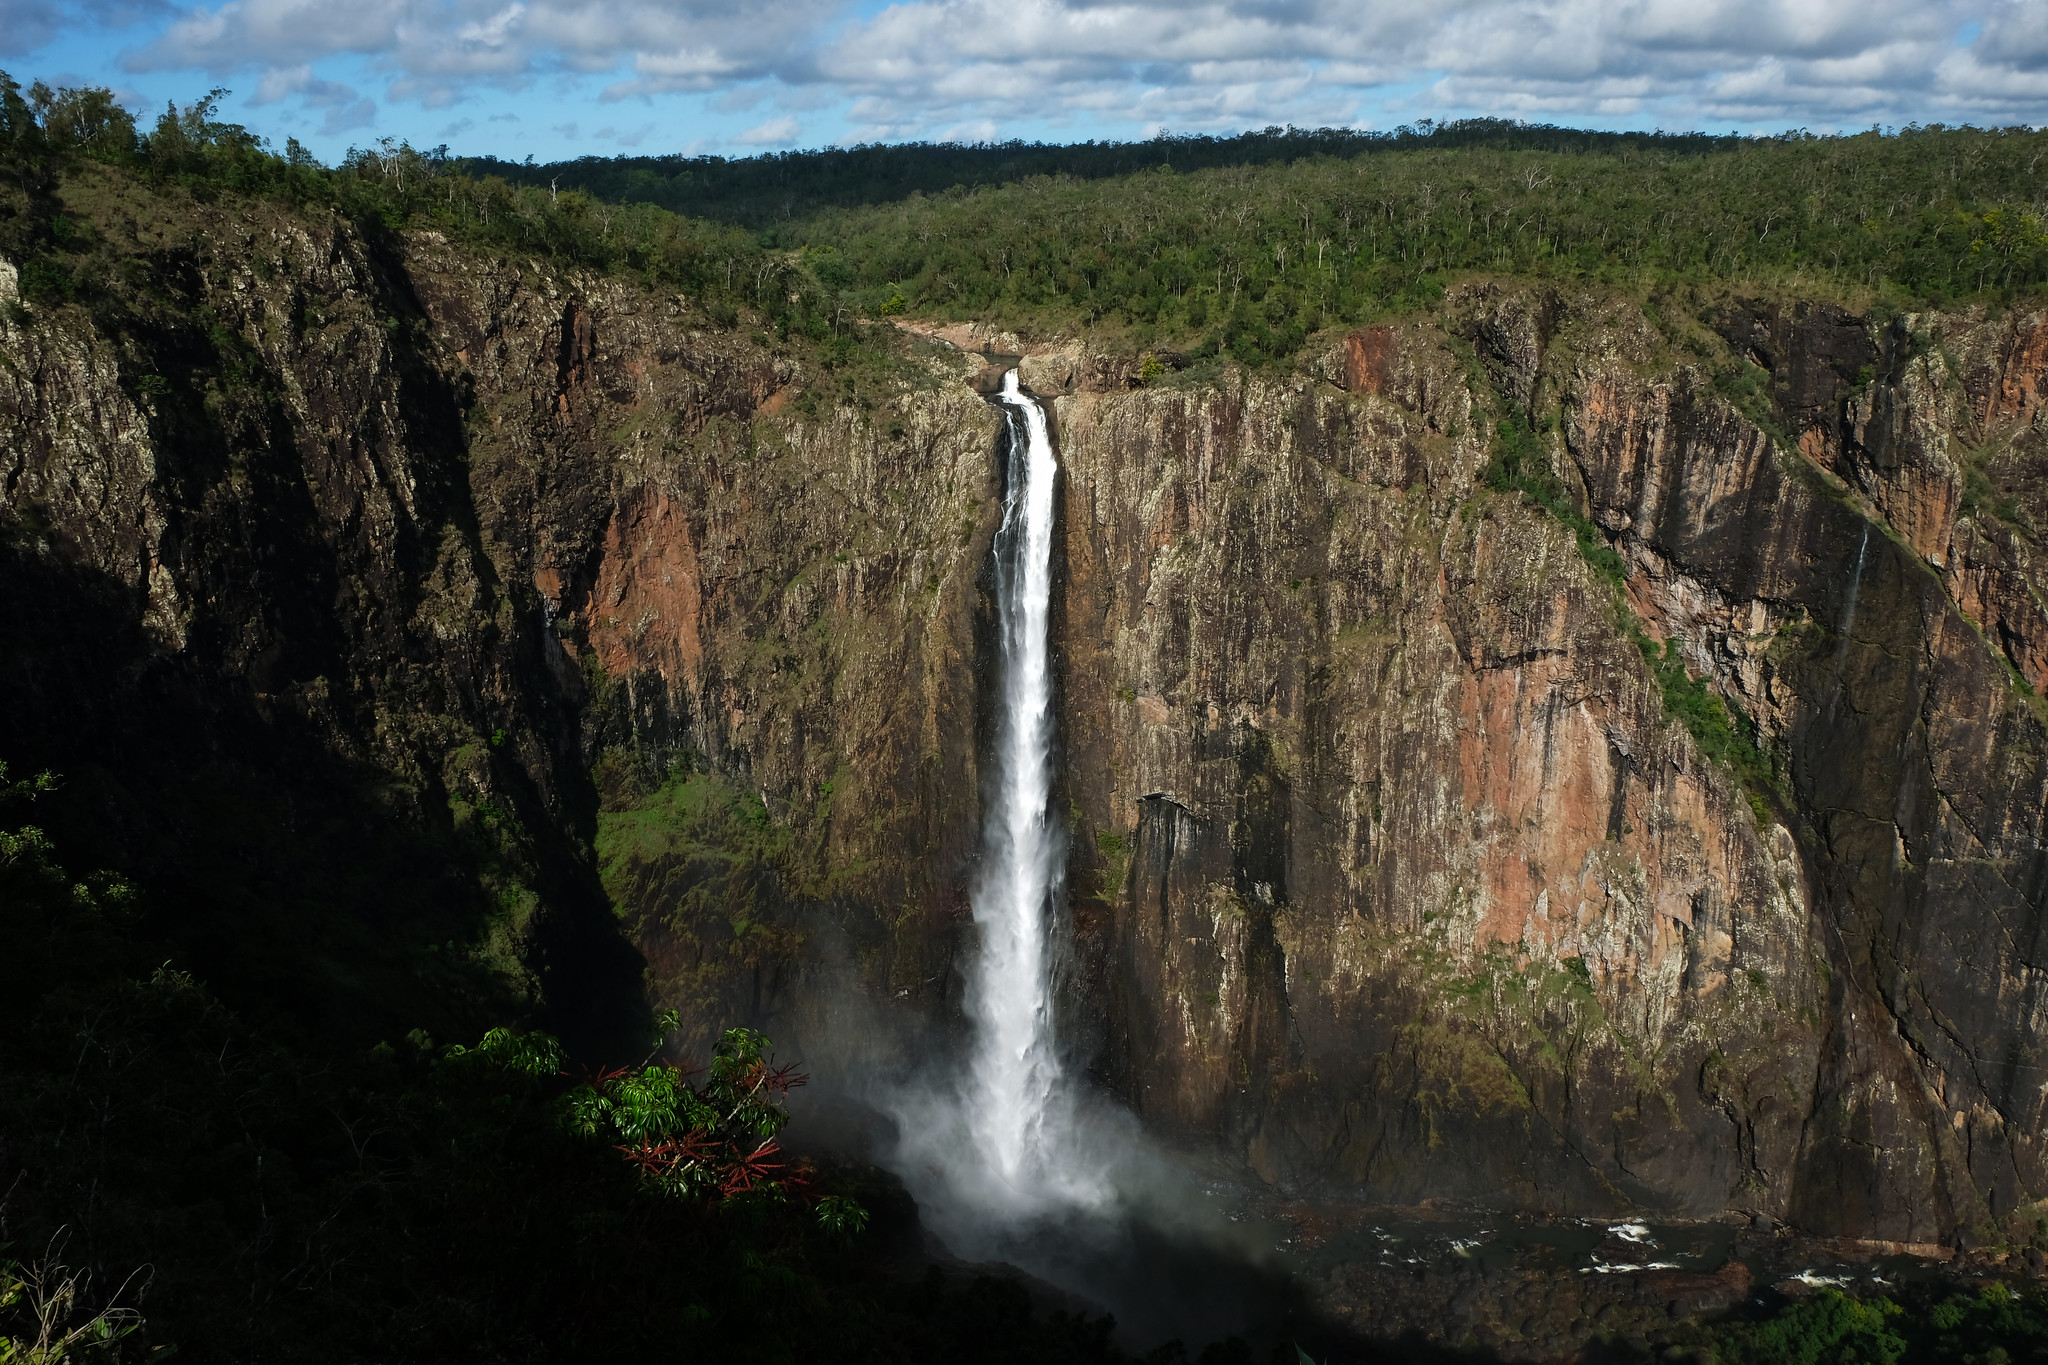 Australia's Highest Waterfall: Wallaman Falls, Girringun National Park, Queensland